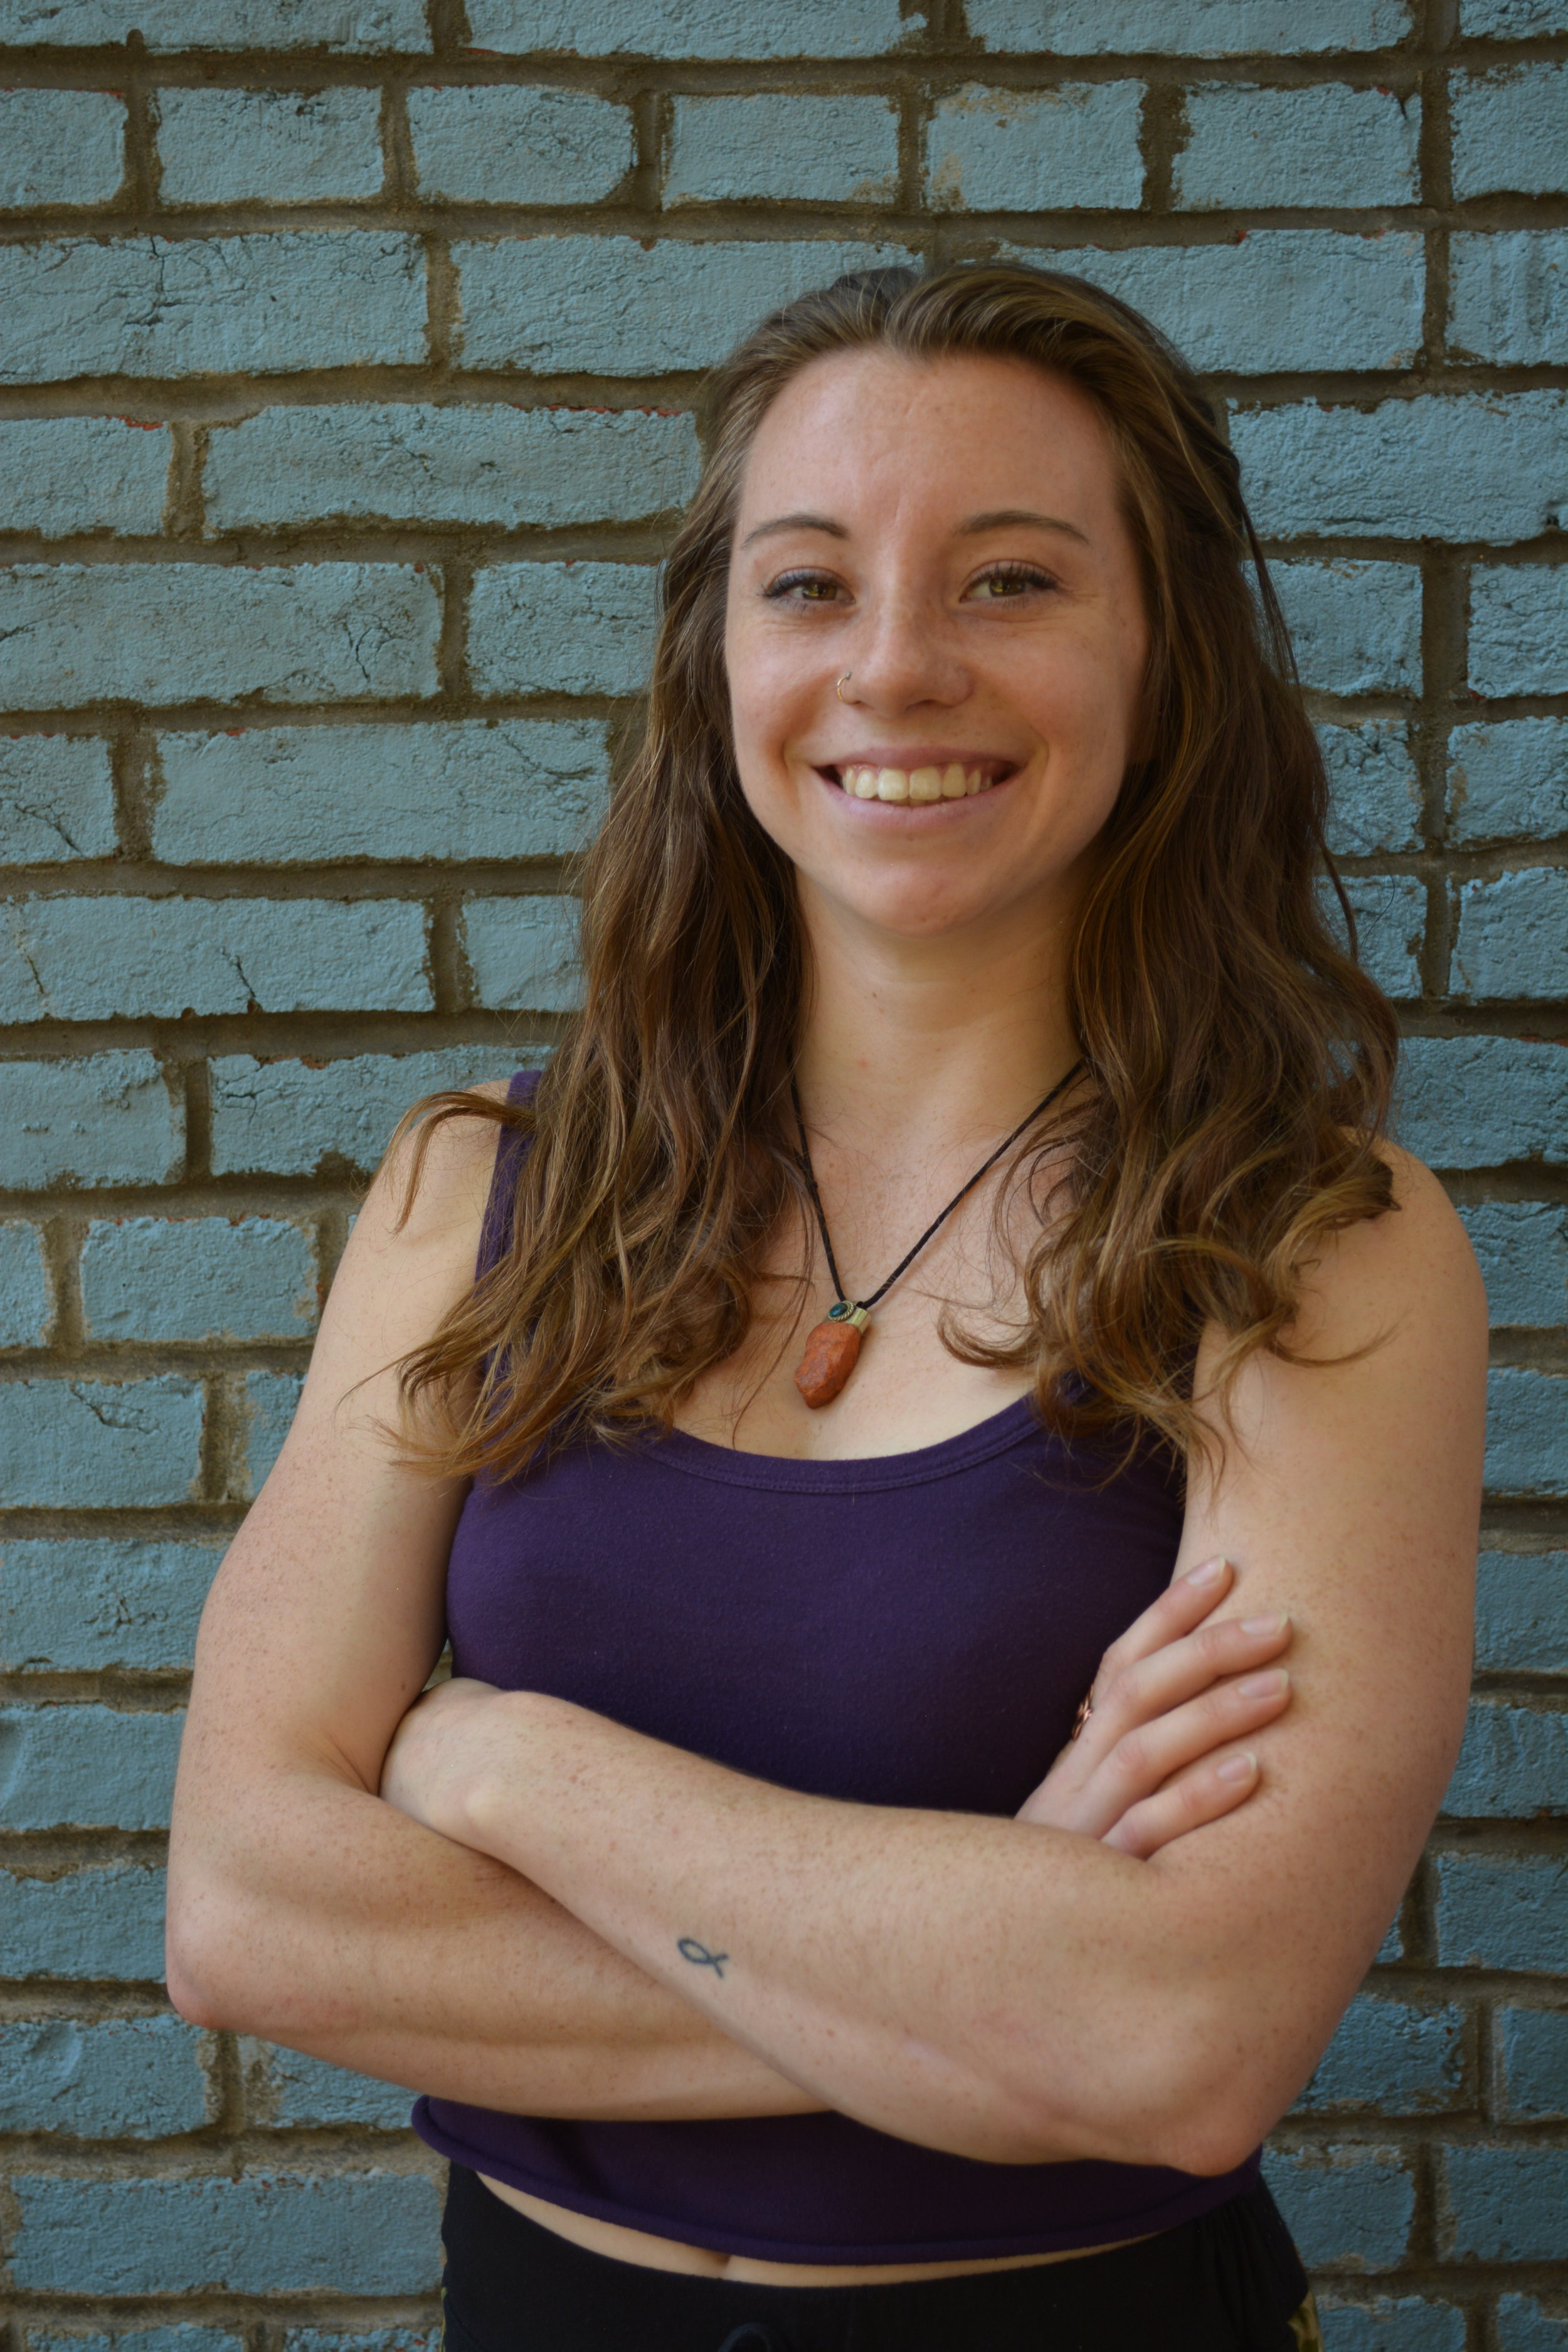 Lauren English, 200 RYT - Lauren was introduced to yoga in 2010 through P90X home fitness videos, seeking to achieve beautiful postures and complete difficult workouts. Later, yoga classes at school brought her to her mat again. She came to the mat stressed, anxious, and eager to please everyone around her.Over the years, Lauren was transformed mentally and spiritually; Yoga brought her focus and peace. She learned mindfulness, meditation, and the importance of breath. Through yoga, she unleashed her inner power, peace, and focus.Lauren enjoys CrossFit, mountain biking, rock climbing, traveling, trying new food, learning new languages, and doing anything outside. She coaches at CrossFit Old School in Bowling Green, Kentucky. With a CrossFit Level one and CrossFit Gymnastics Certifications, she aspires to achieve her Level 2 certification soon. She has a Bachelor of Arts degree in Diversity and Community Studies from Western Kentucky University.When students take her class, students embark on a journey of self-discovery. With a challenging Power Vinyasa flow, students move in their own bodies with curiosity, humor, and peace. Lauren aims to promote ideas of respect, radical love, and generosity towards our bodies, our neighbors, and the earth. Her teaching style of Power Vinyasa yoga can be describes as rigorous, energizing, breath focused, cheerful, and introspective.